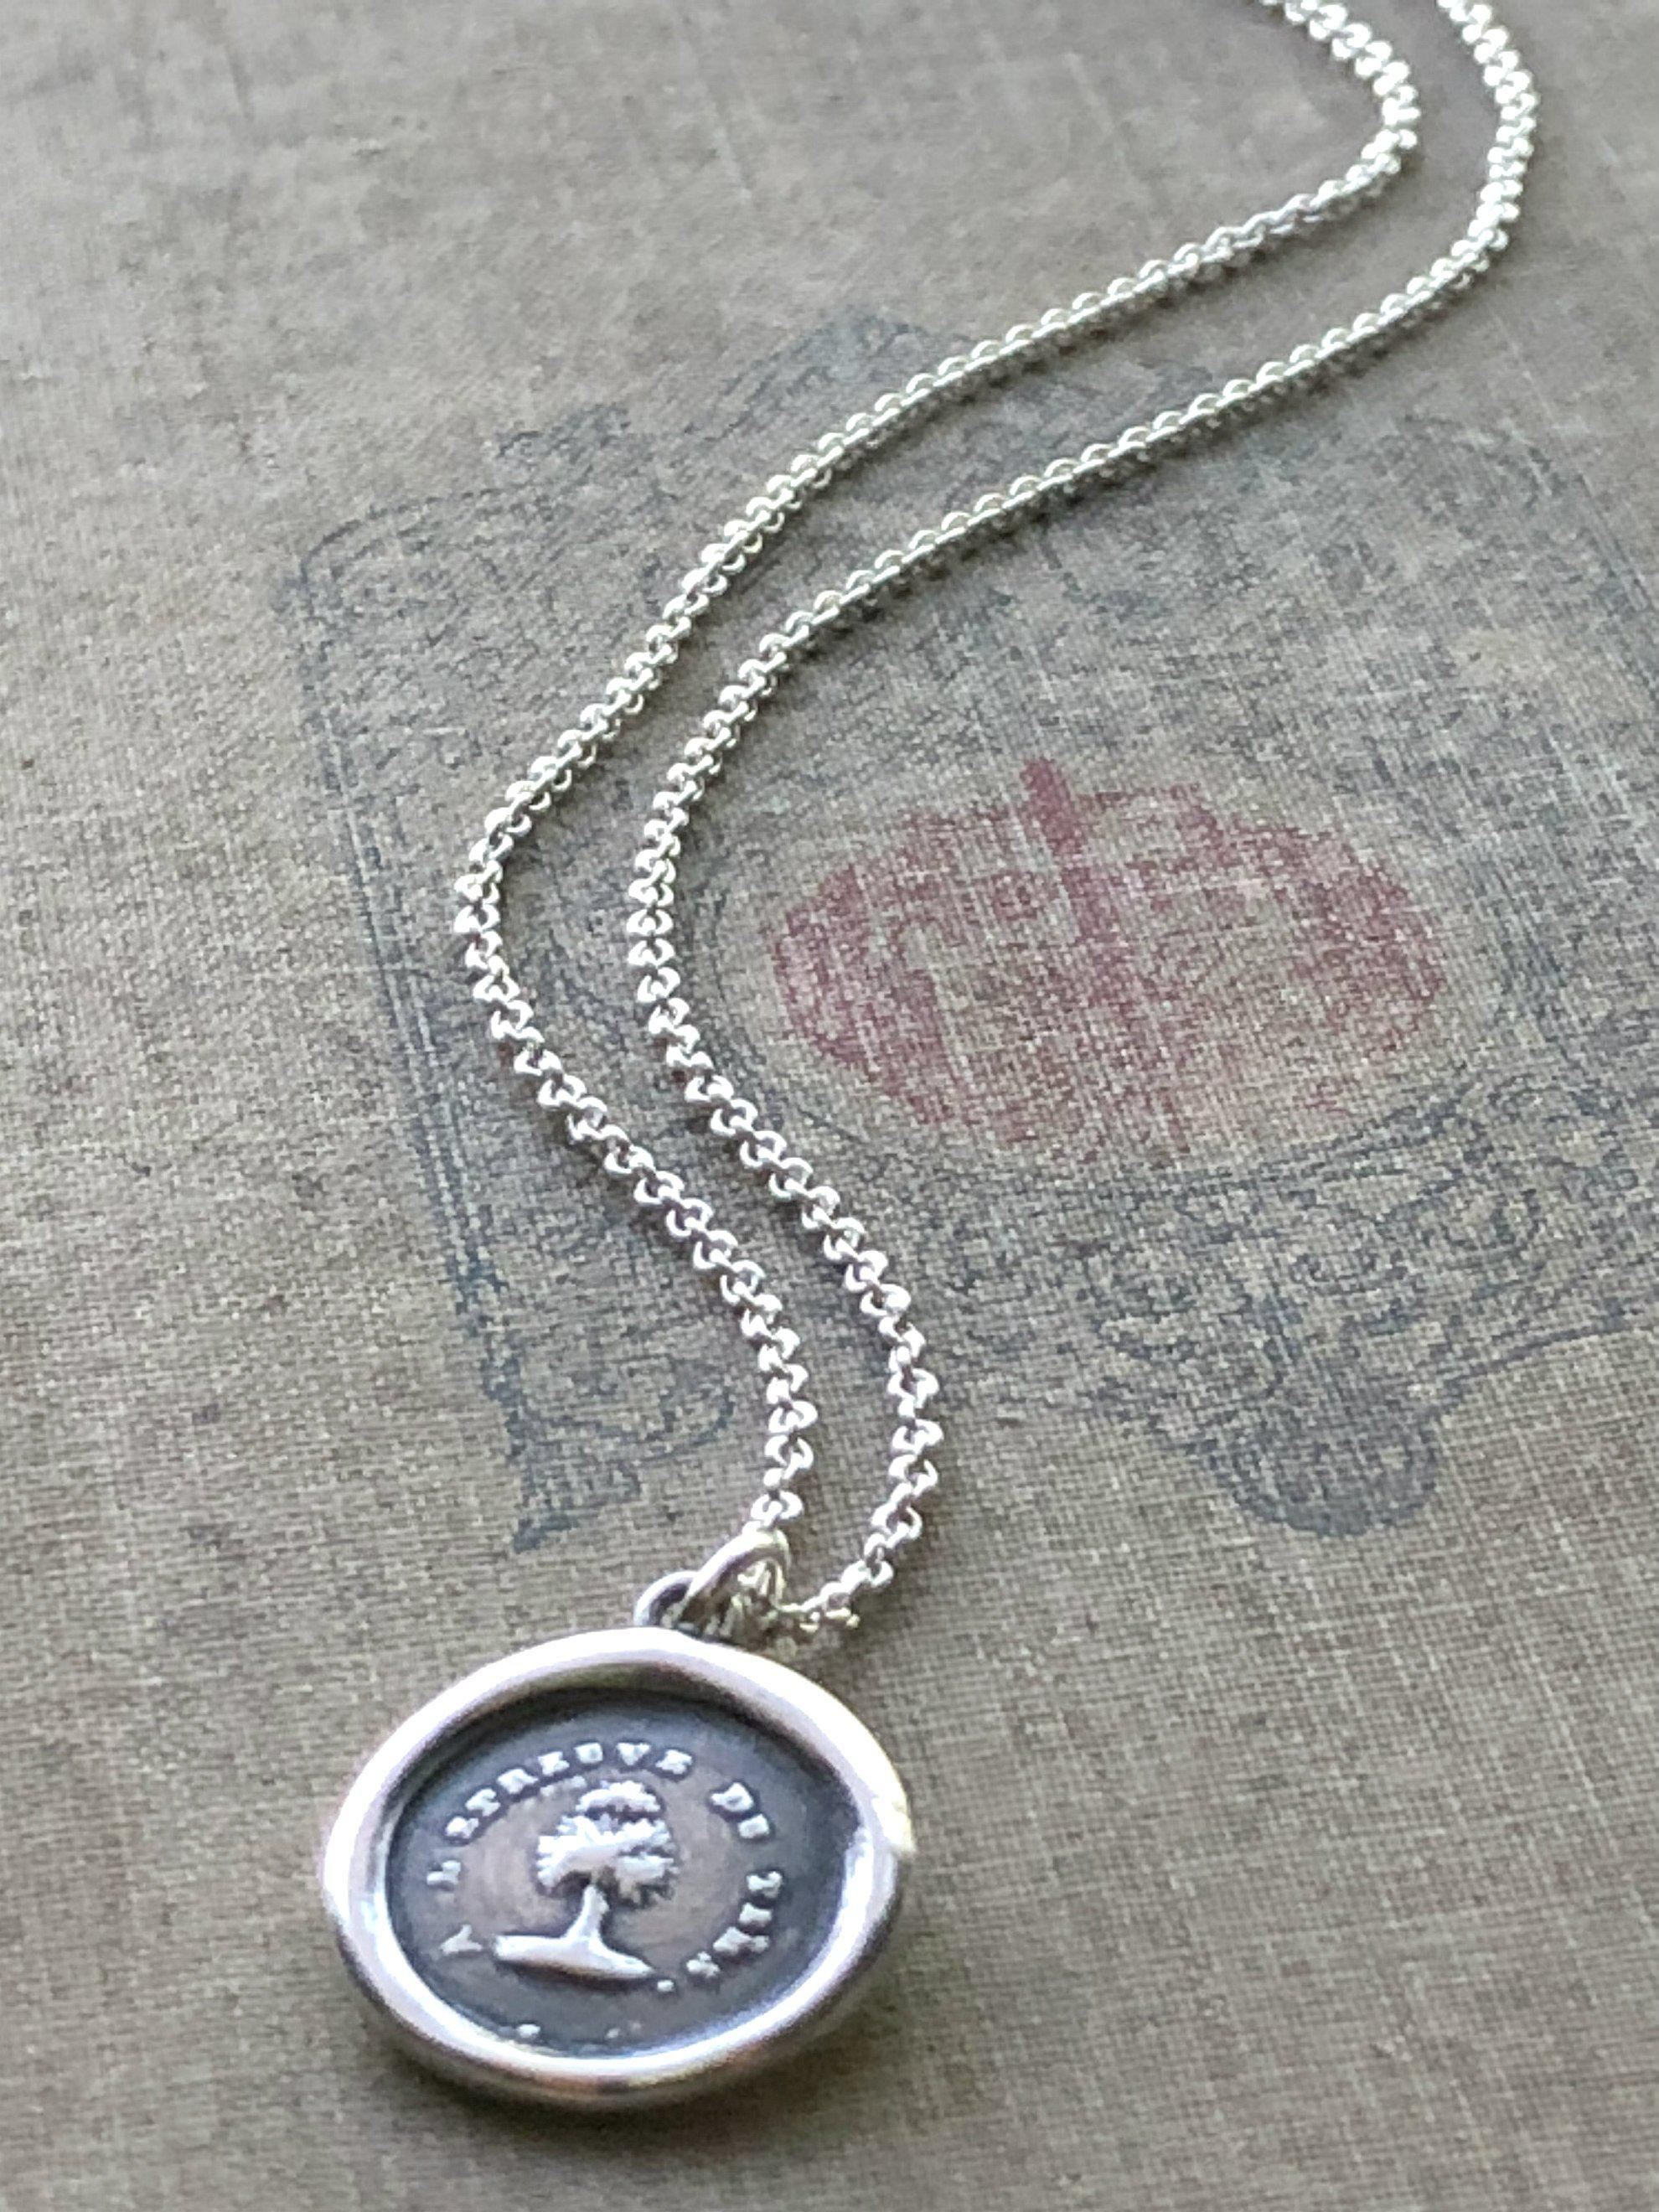 Steadfast Tree Wax Seal Necklace - Faithful & Unwavering